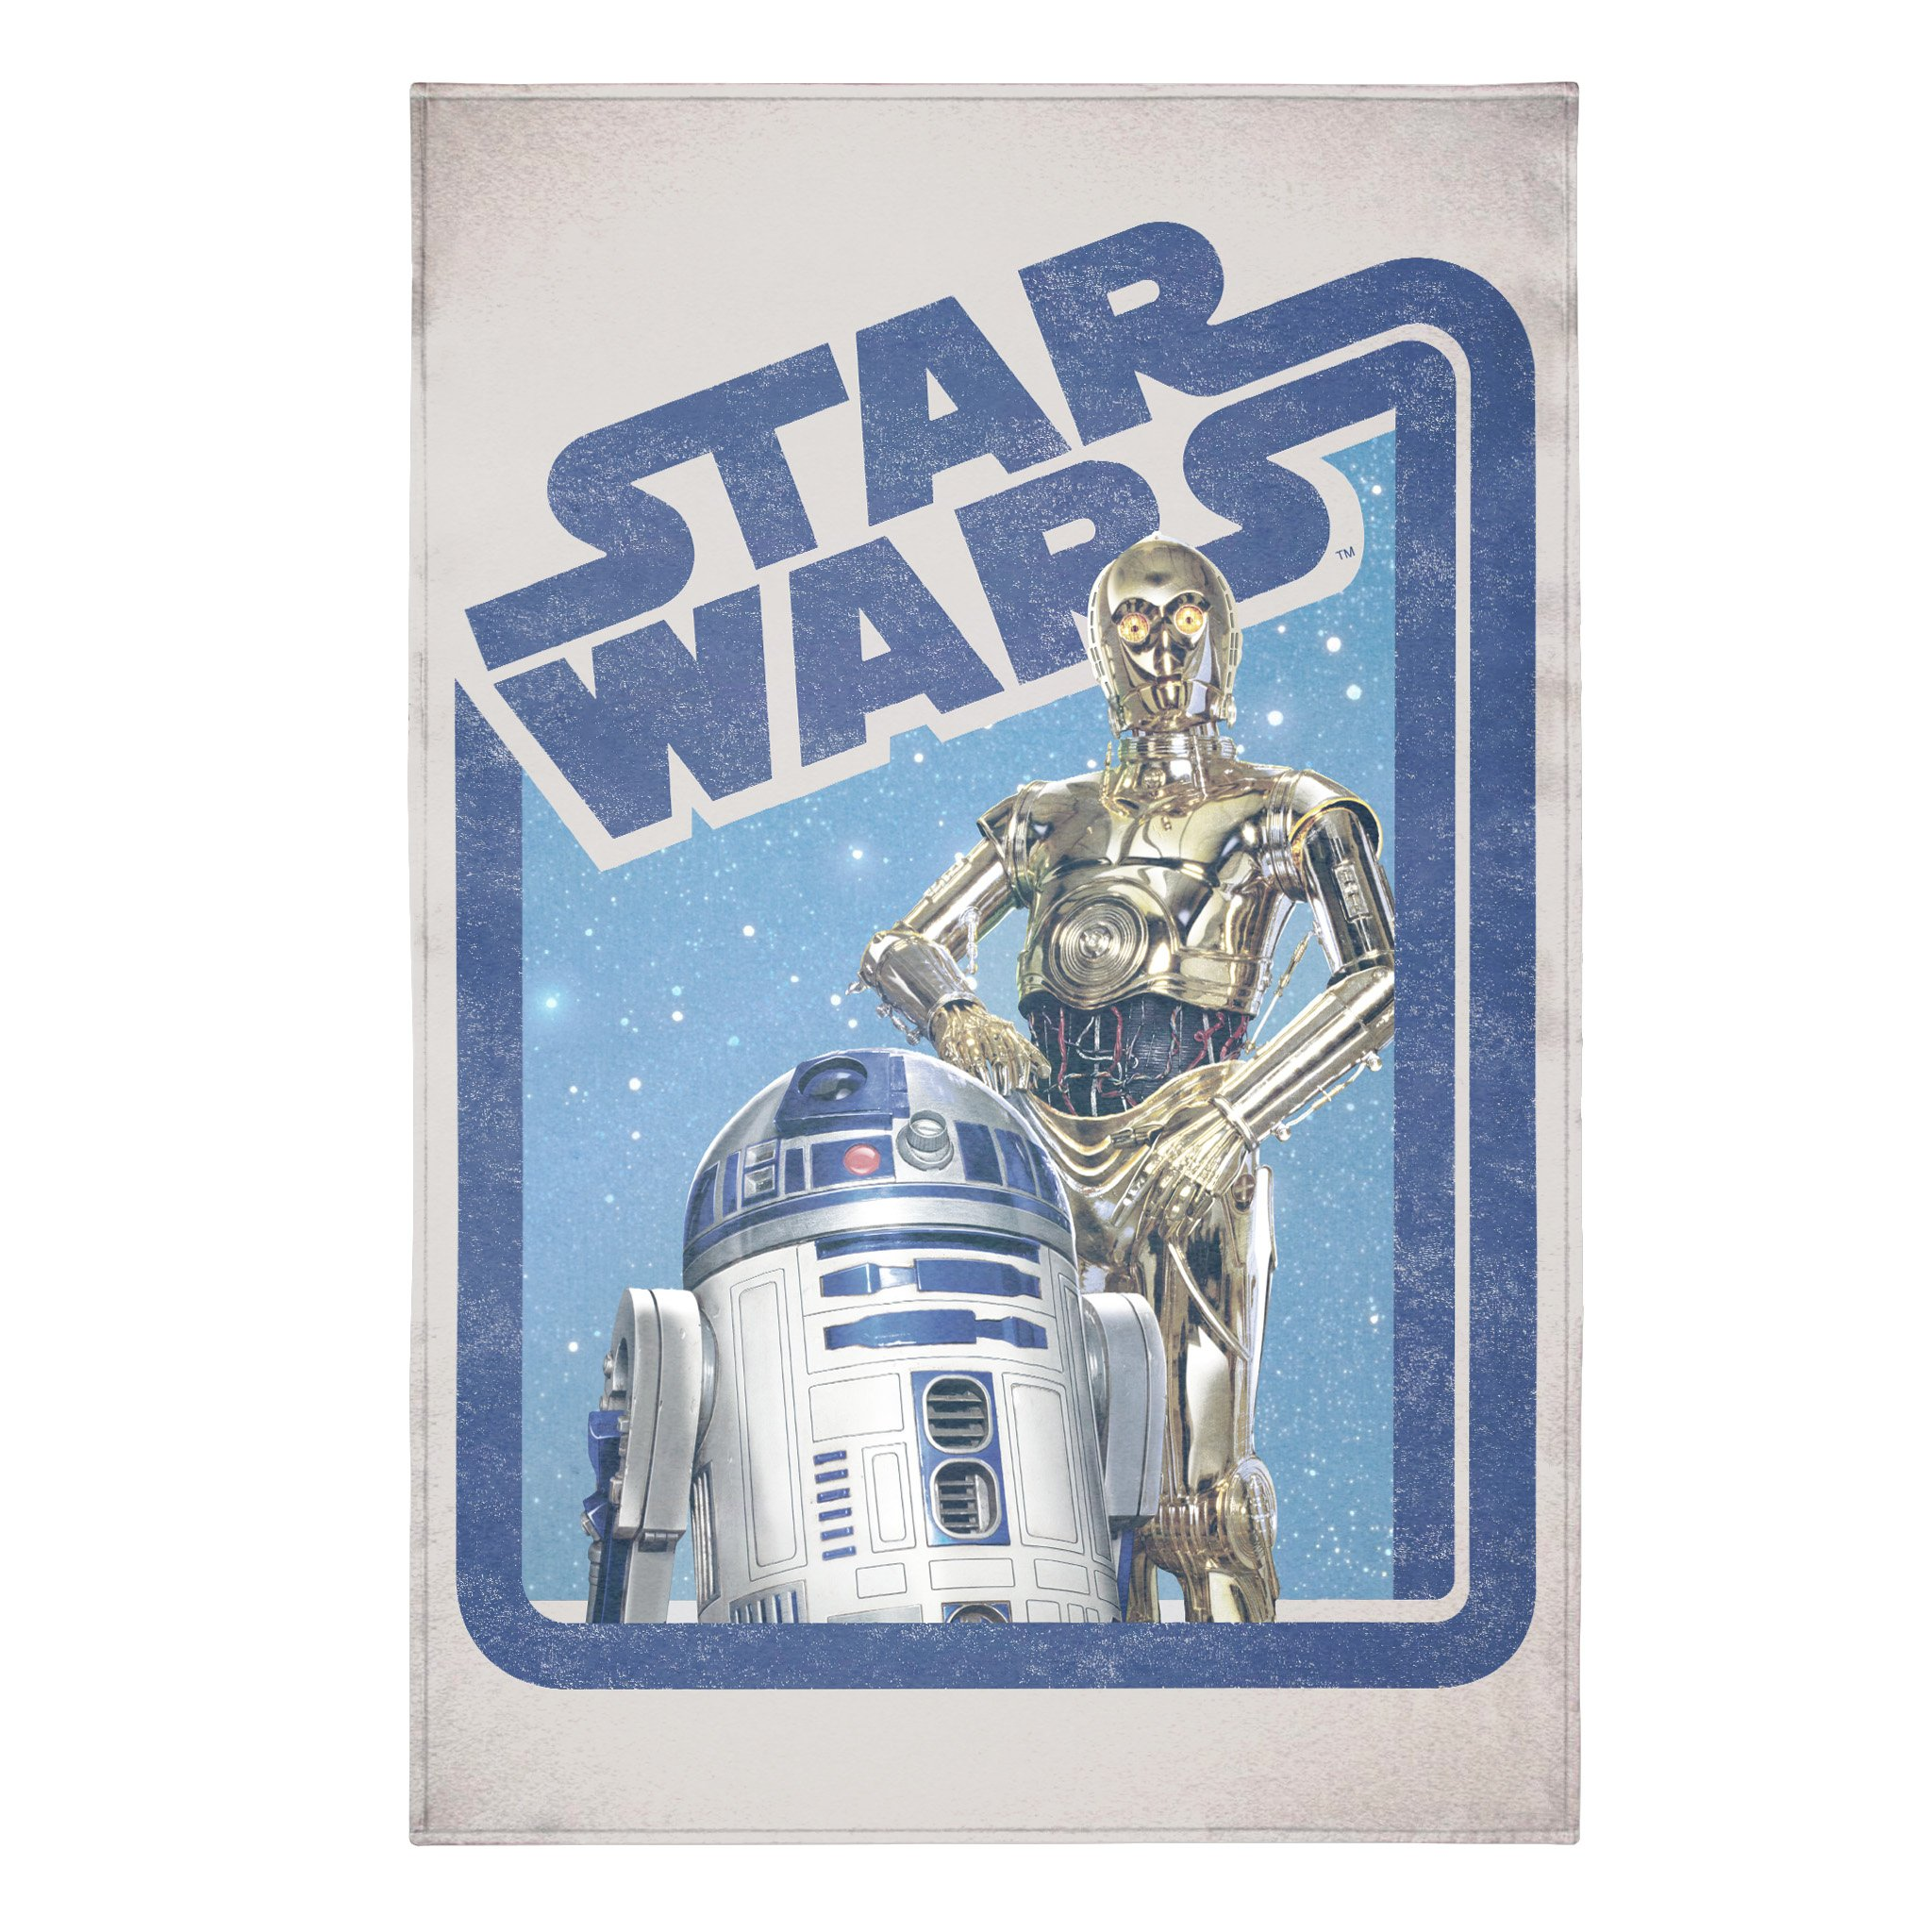 Jay Franco Star Wars Classic Droids Blanket-Measures 62 x 90 inches, Kids Bedding Features C-3PO and R2-D2-Fade Resistant Super Soft Fleece-(Official Product) by Jay Franco